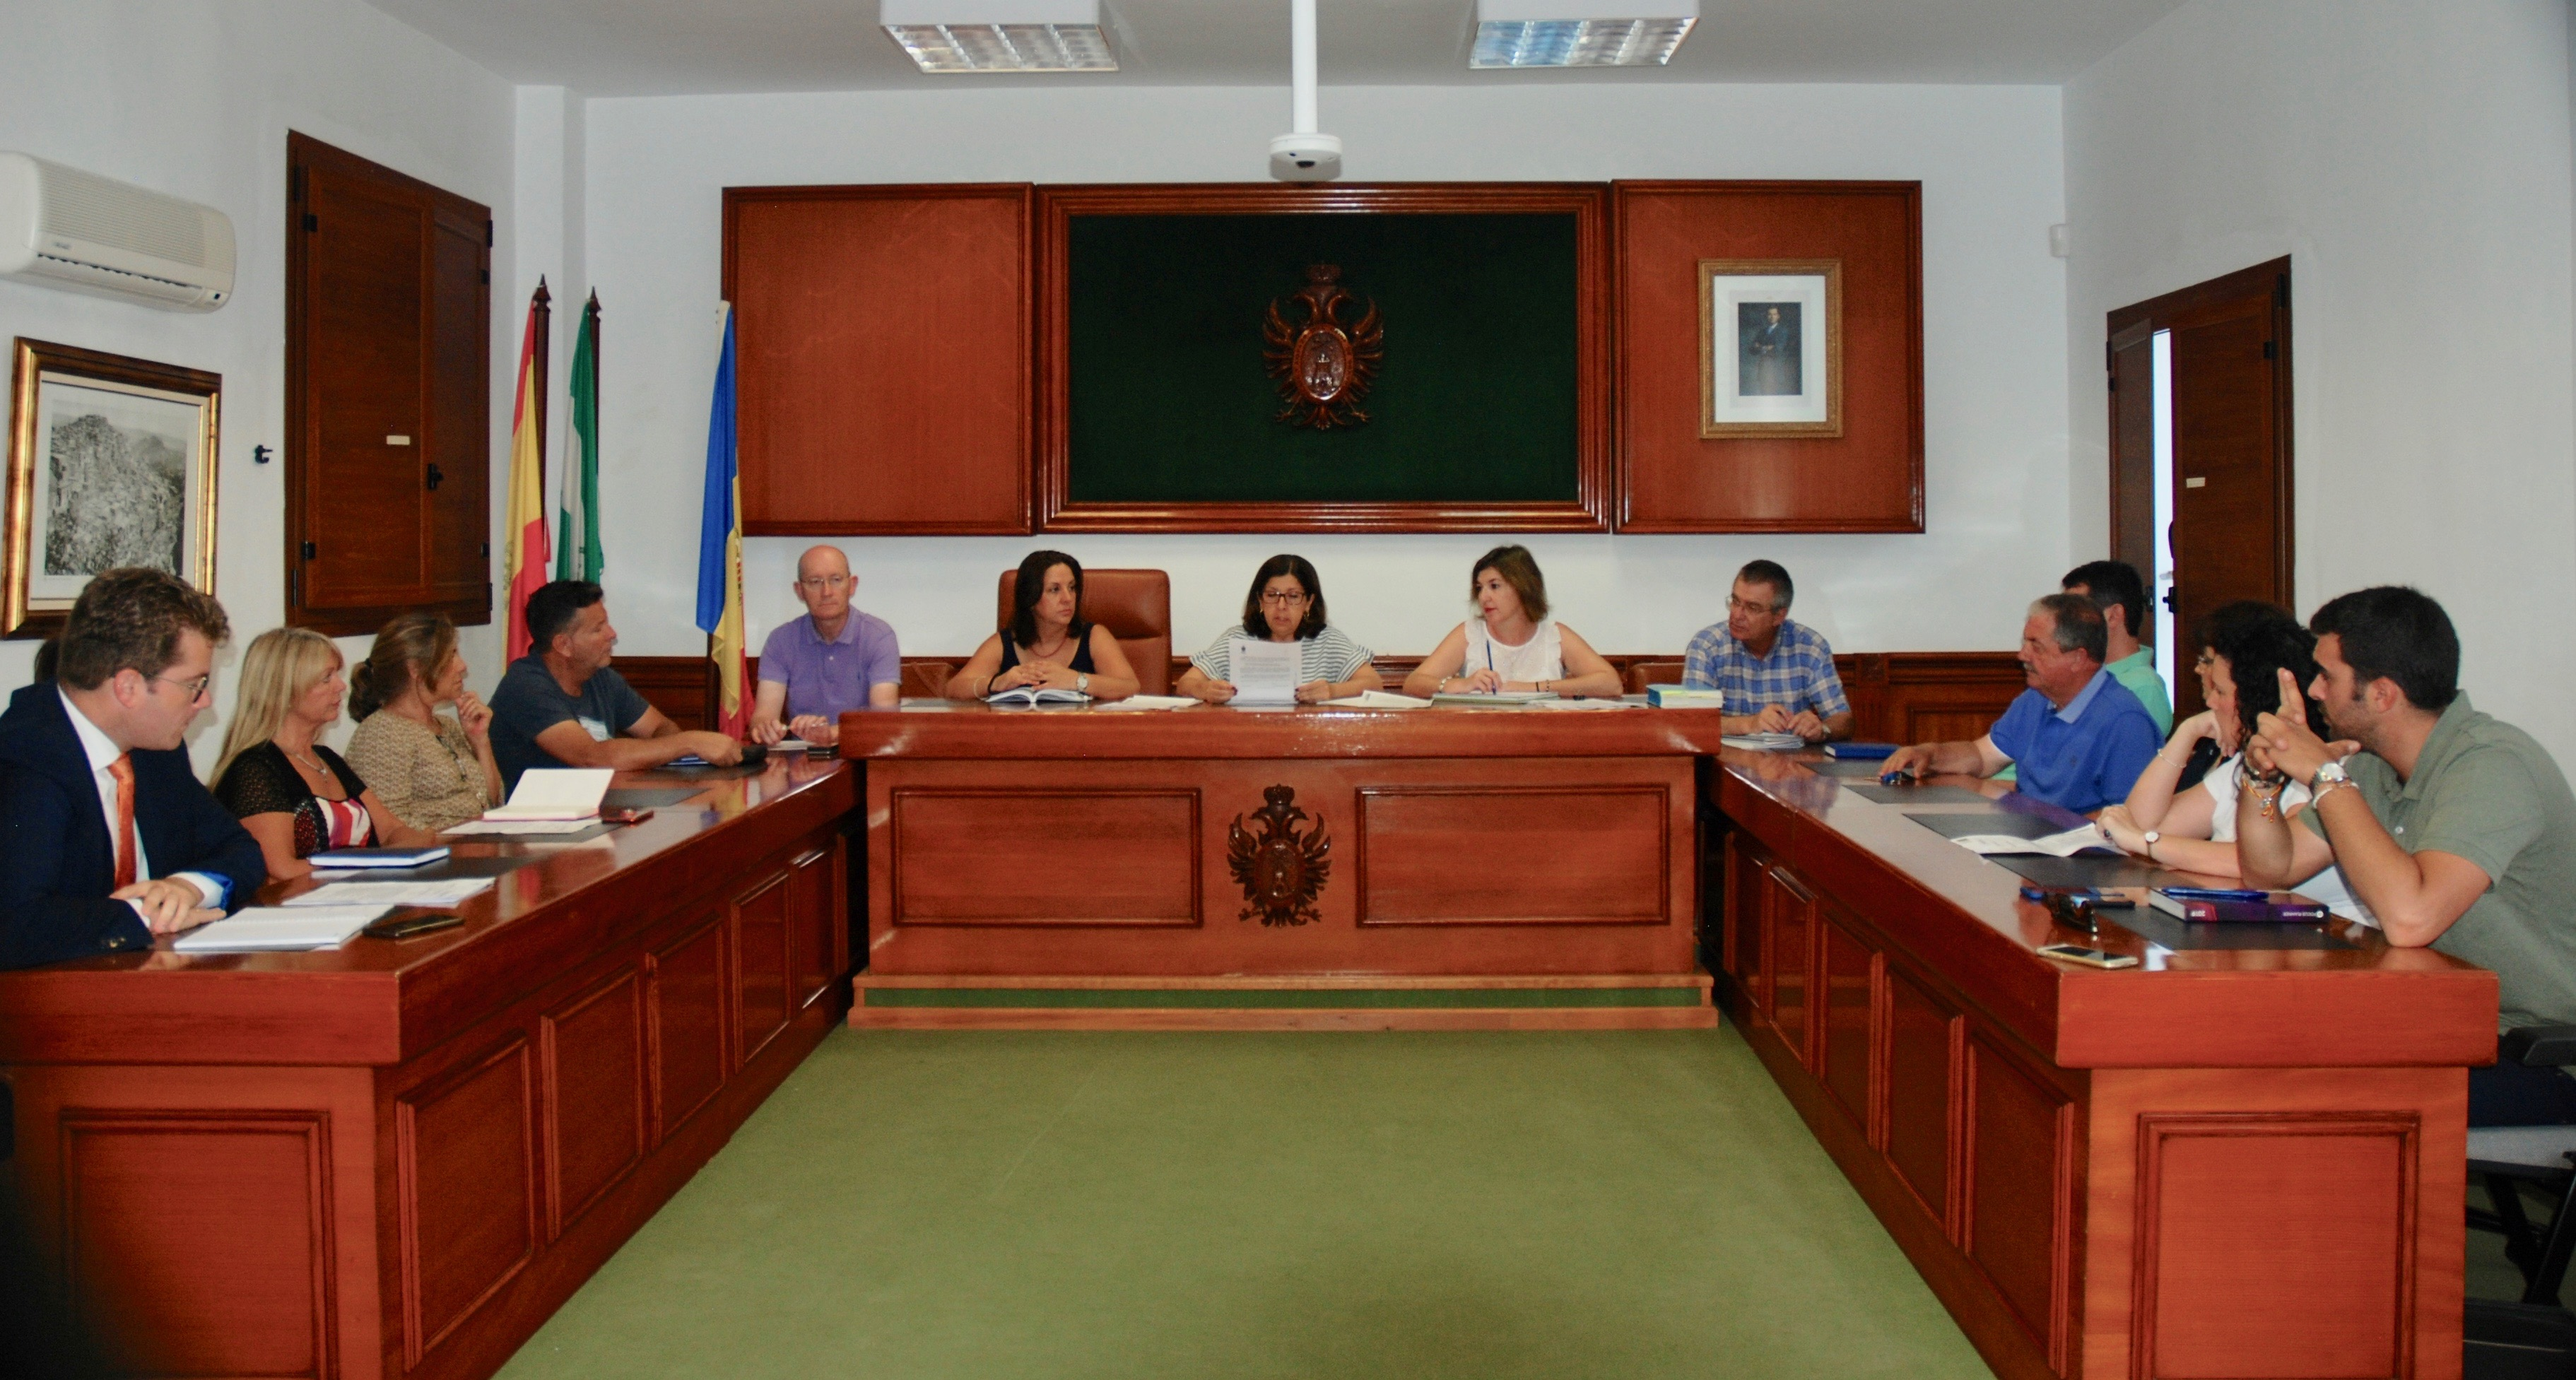 Mojácar recently held the first plenary session of the new term of office, in which the roles of the Councillors were approved for the next four years.